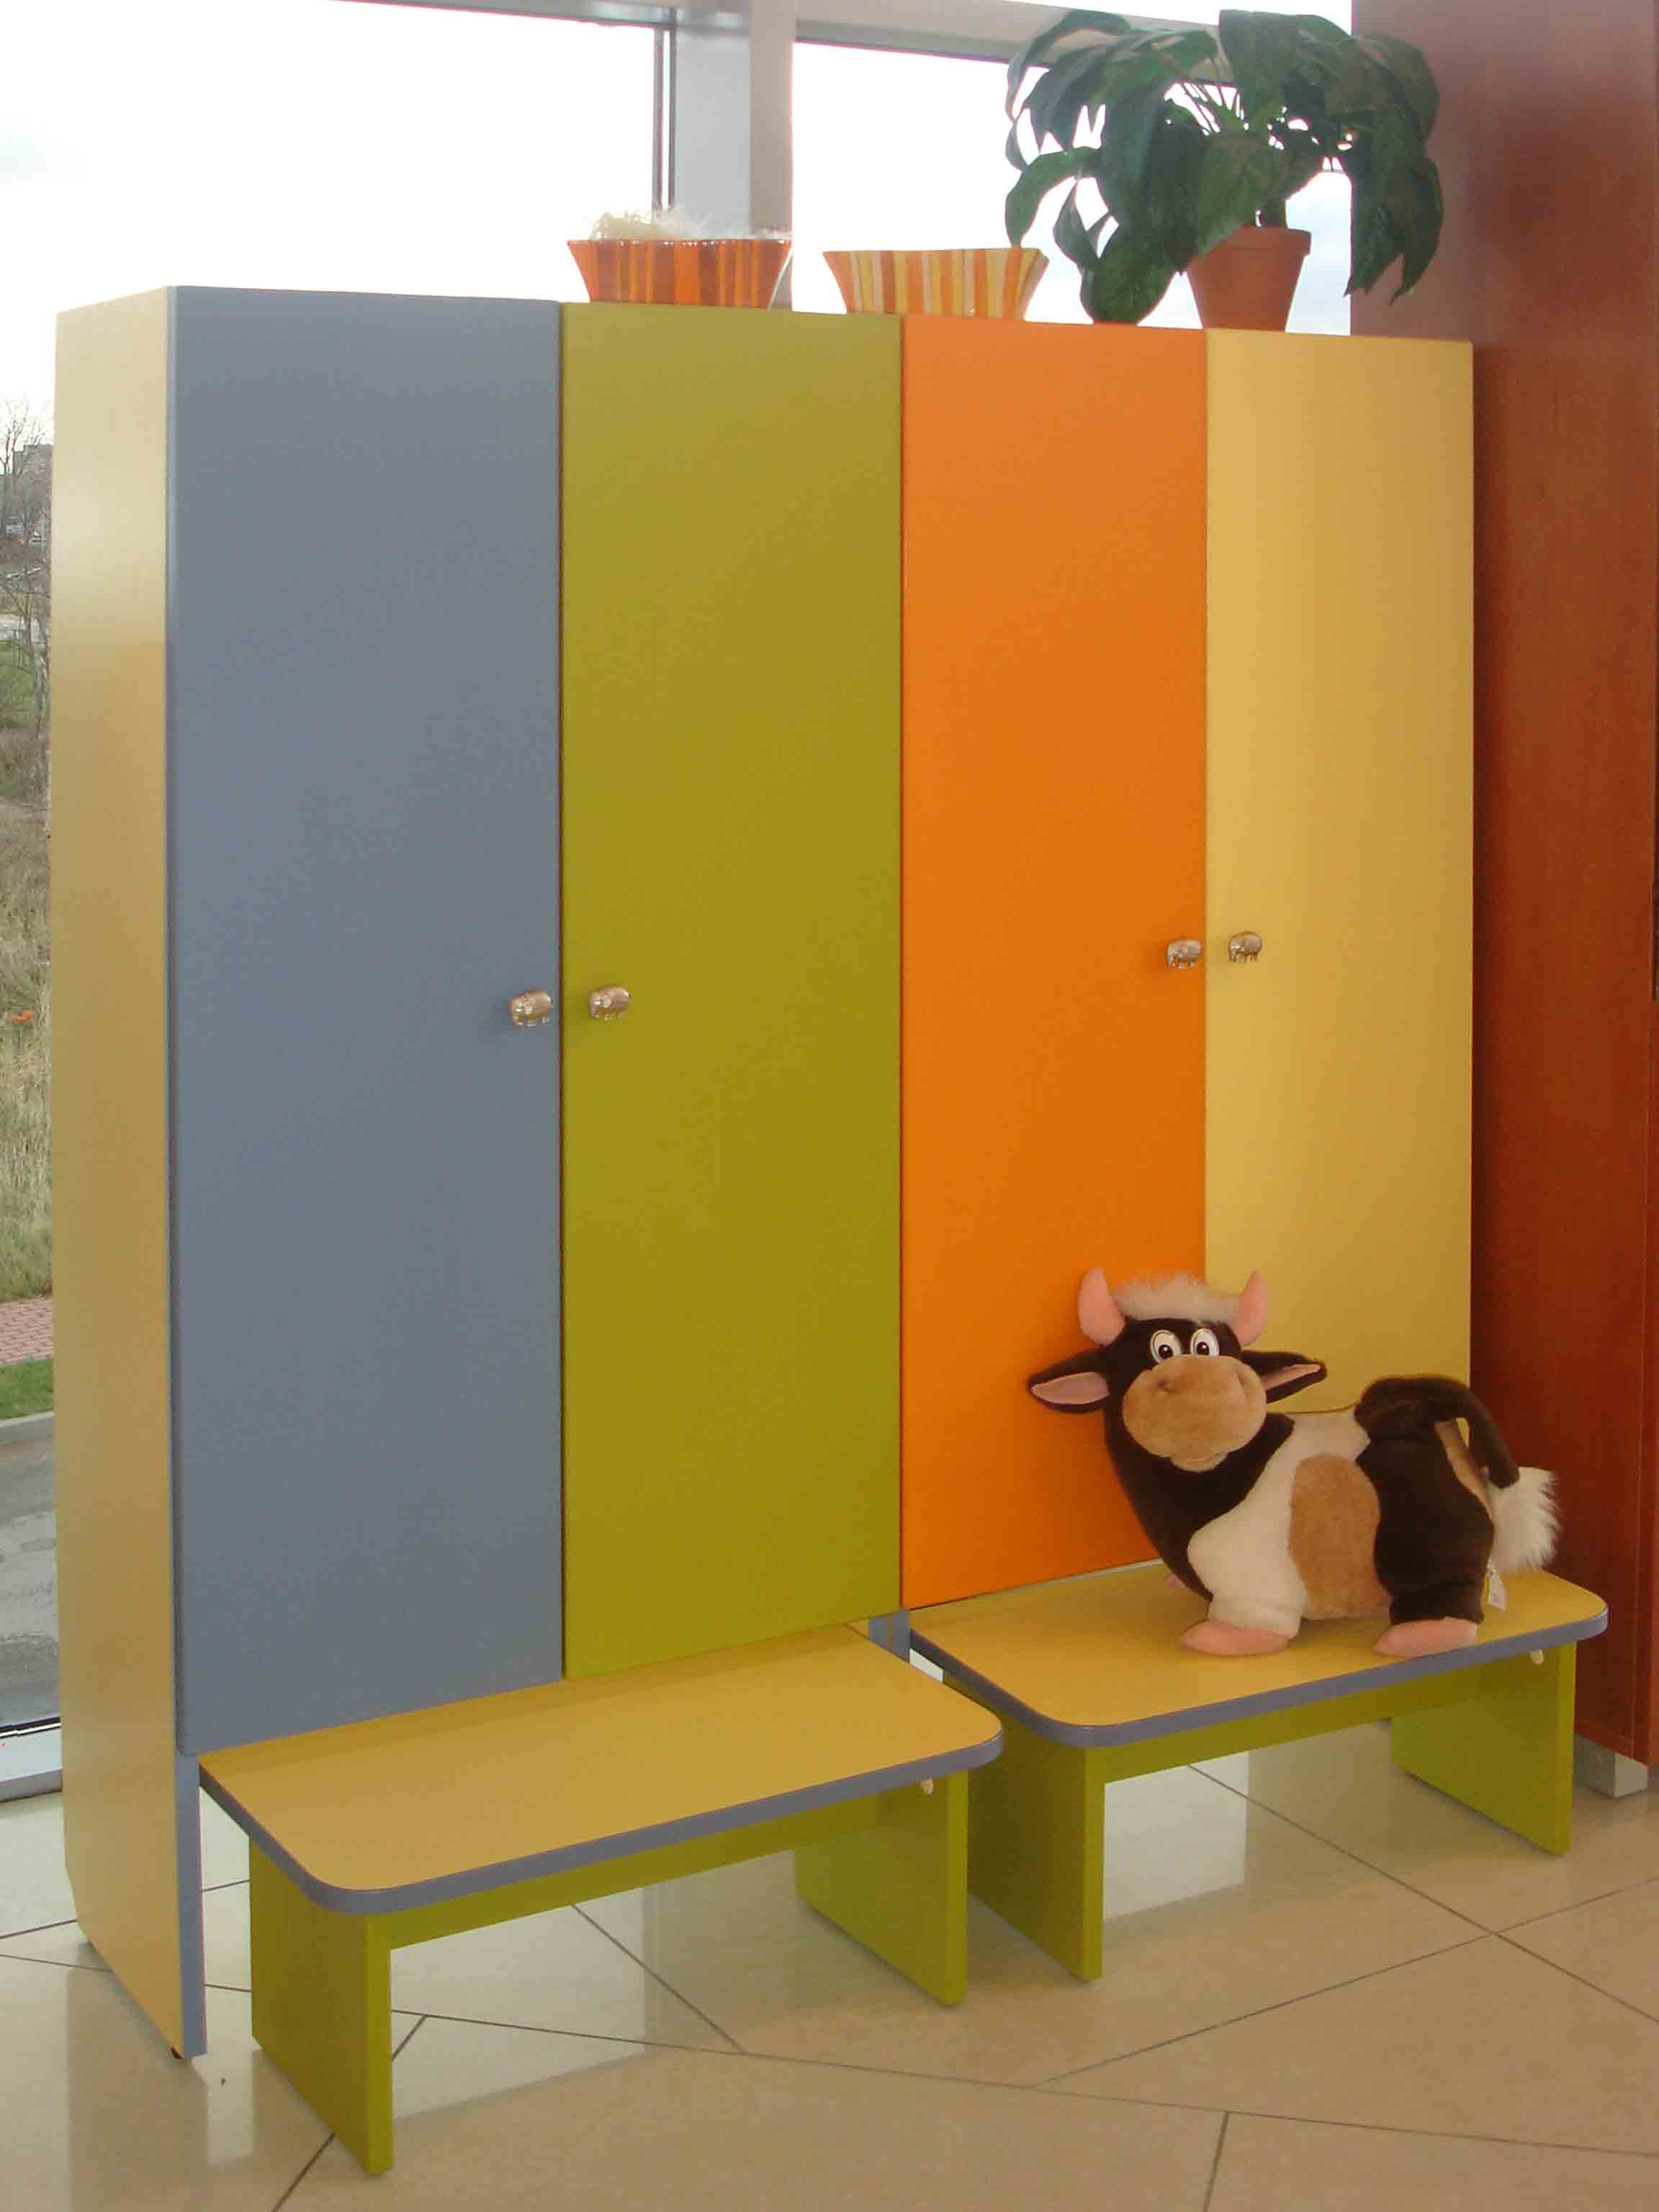 Nursery Furniture - Maadi Community Guide Maadi, Cairo. Egypt